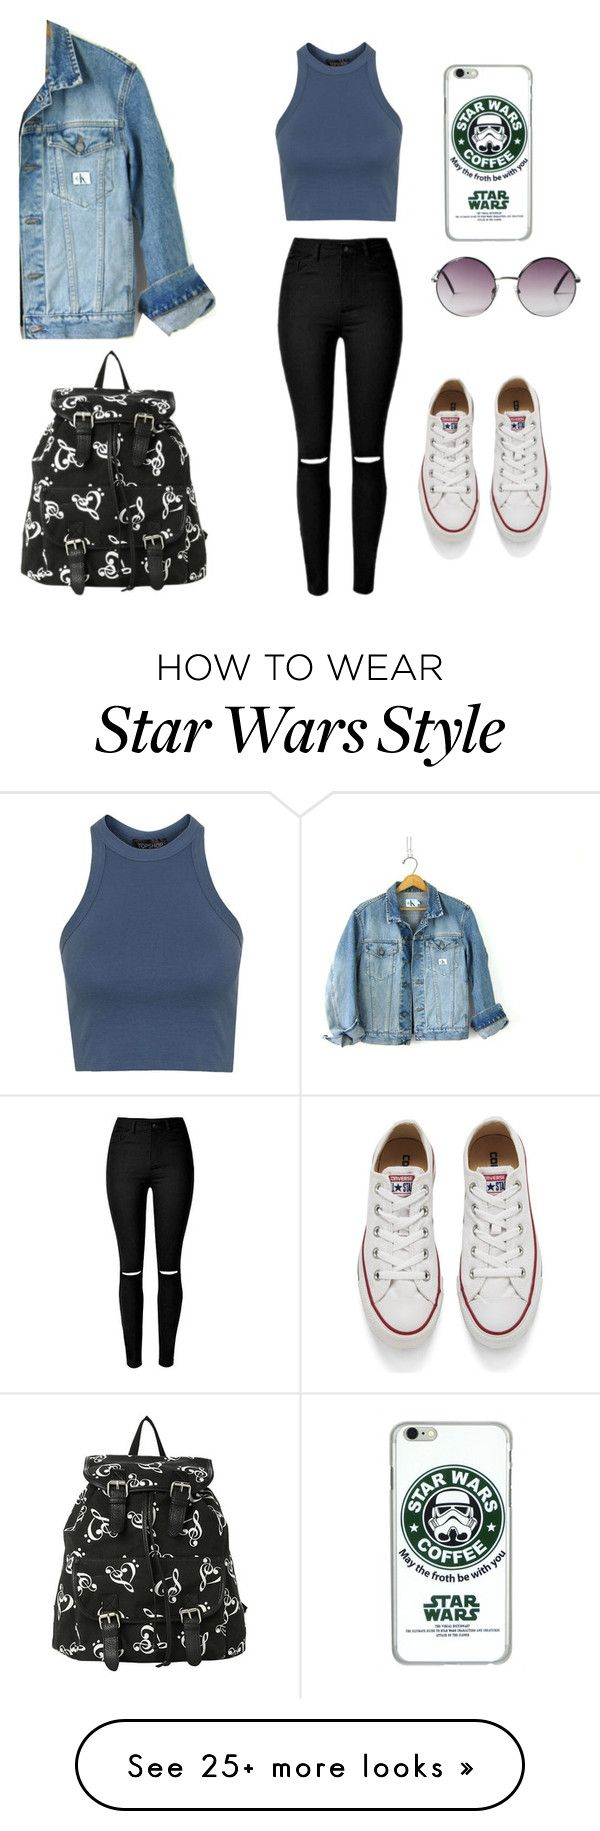 """1"" by banana-zz1 on Polyvore featuring Topshop, Calvin Klein, Converse, Monki, women's clothing, women, female, woman, misses and juniors"